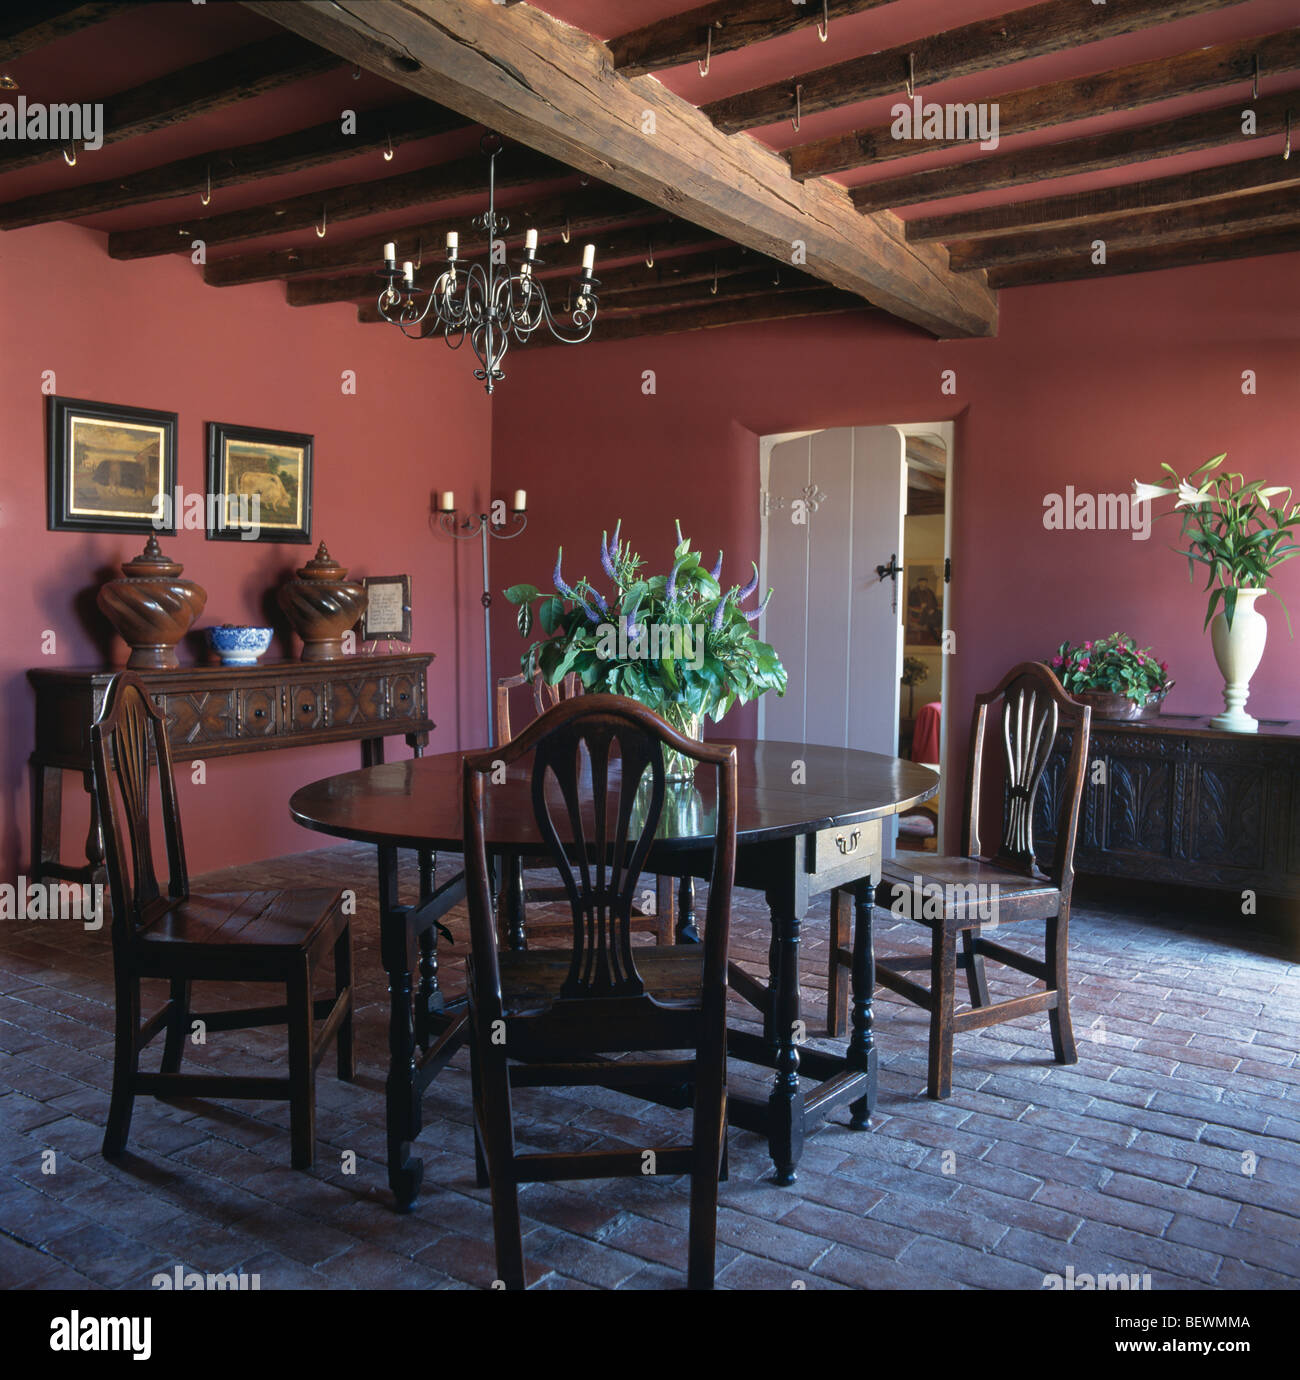 Antique Oak Table And Chairs In Red Country Dining Room With Brick Flooring Rustic Wooden Ceiling Beams